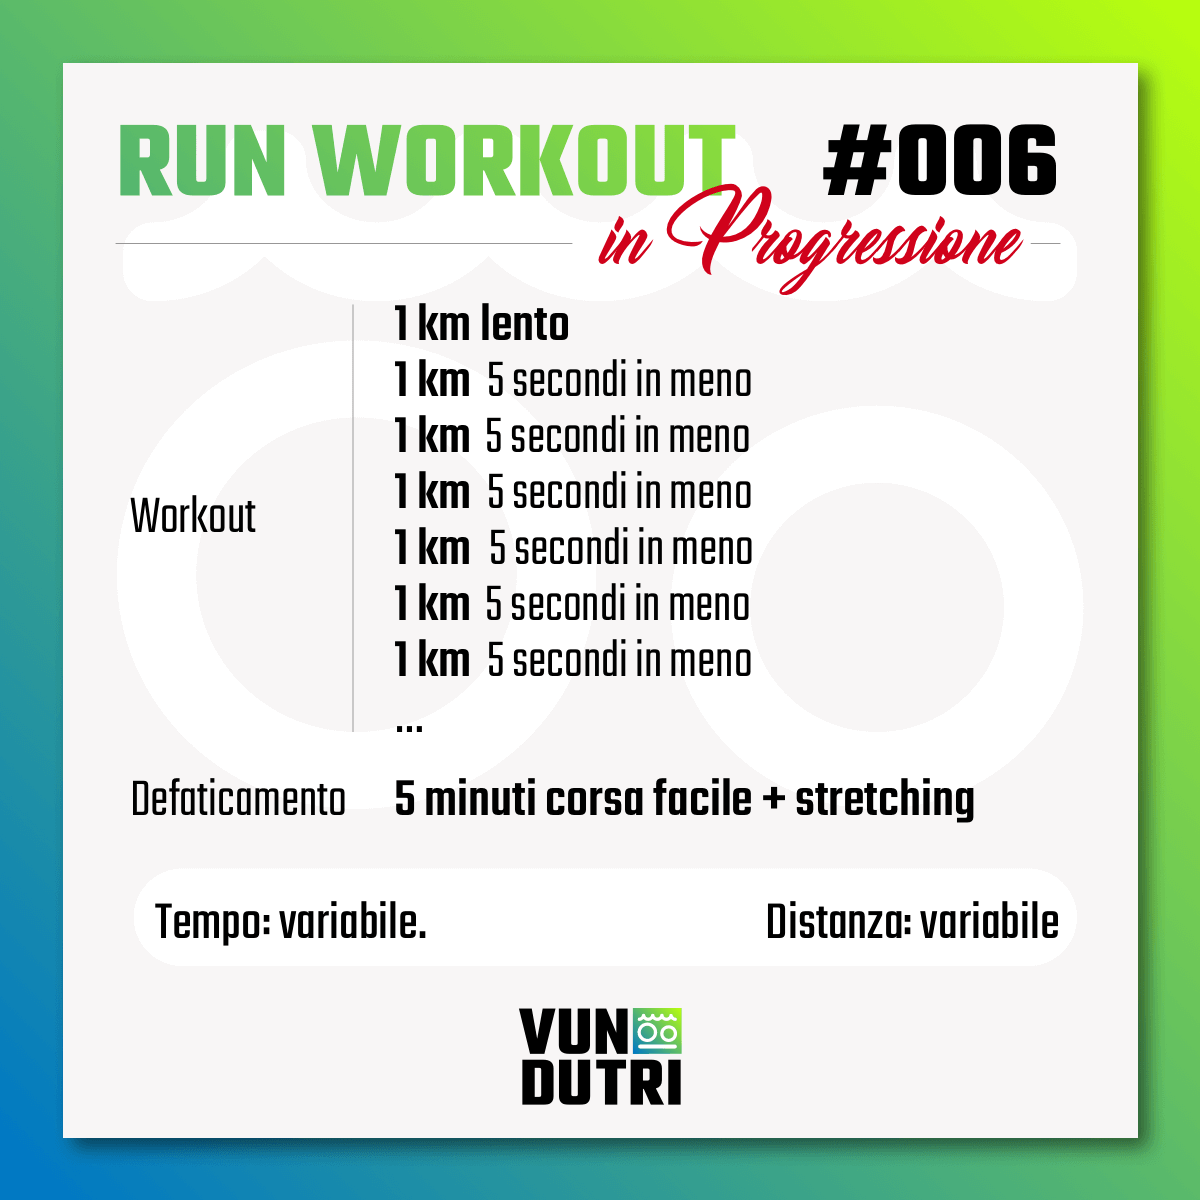 Run Workout 006 - in progressione